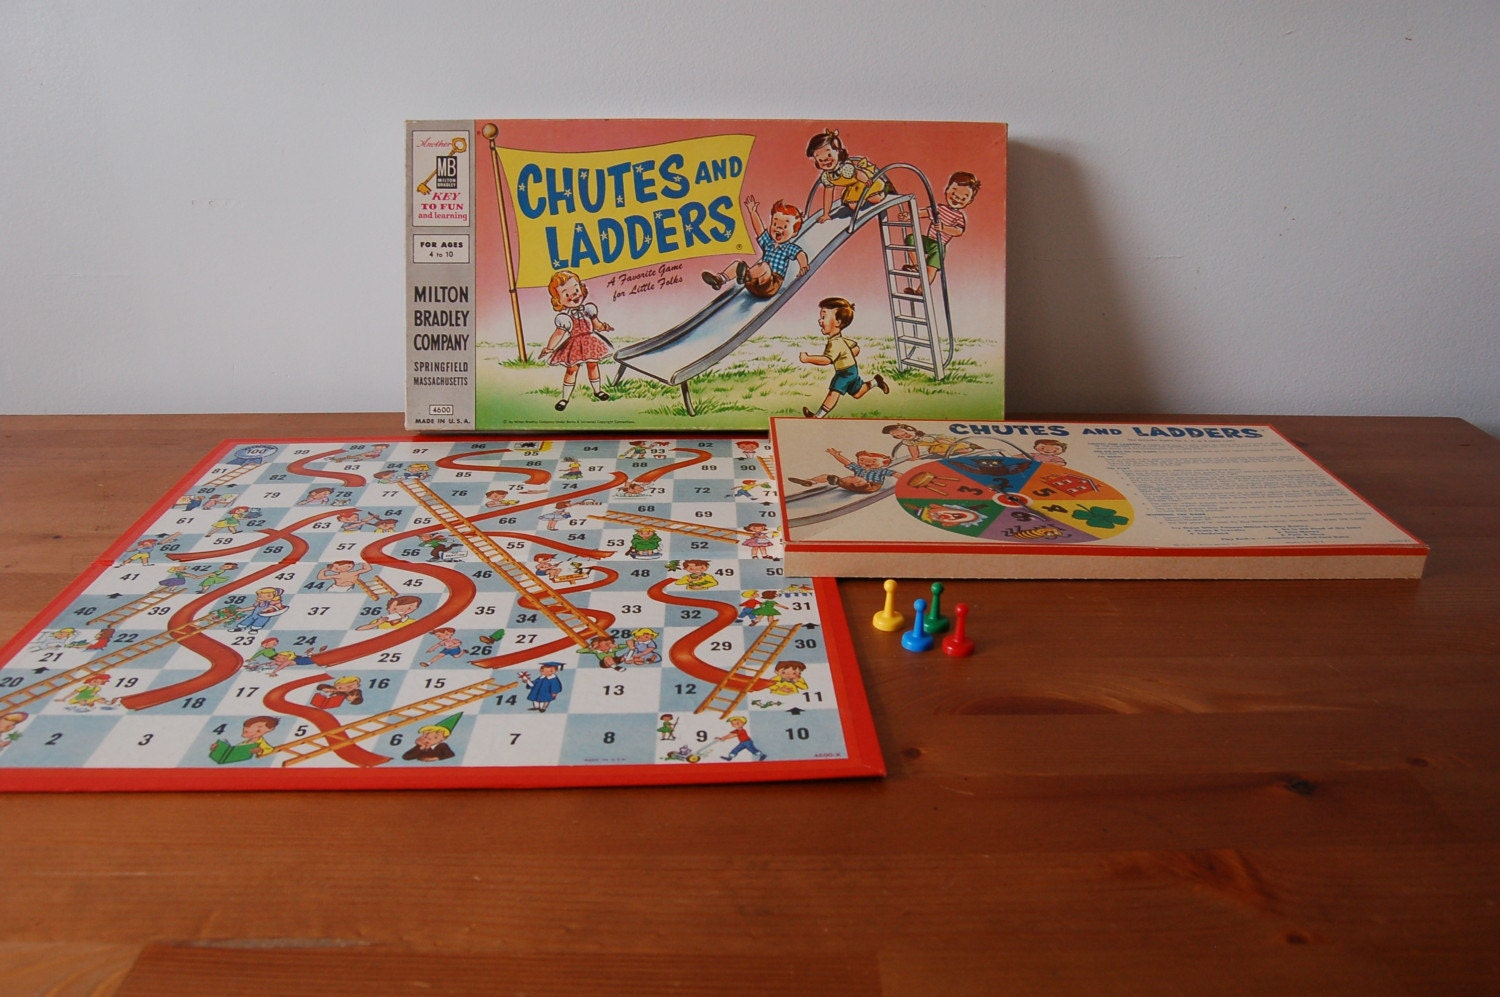 Vintage Chutes And Ladders Board Game 1956 By